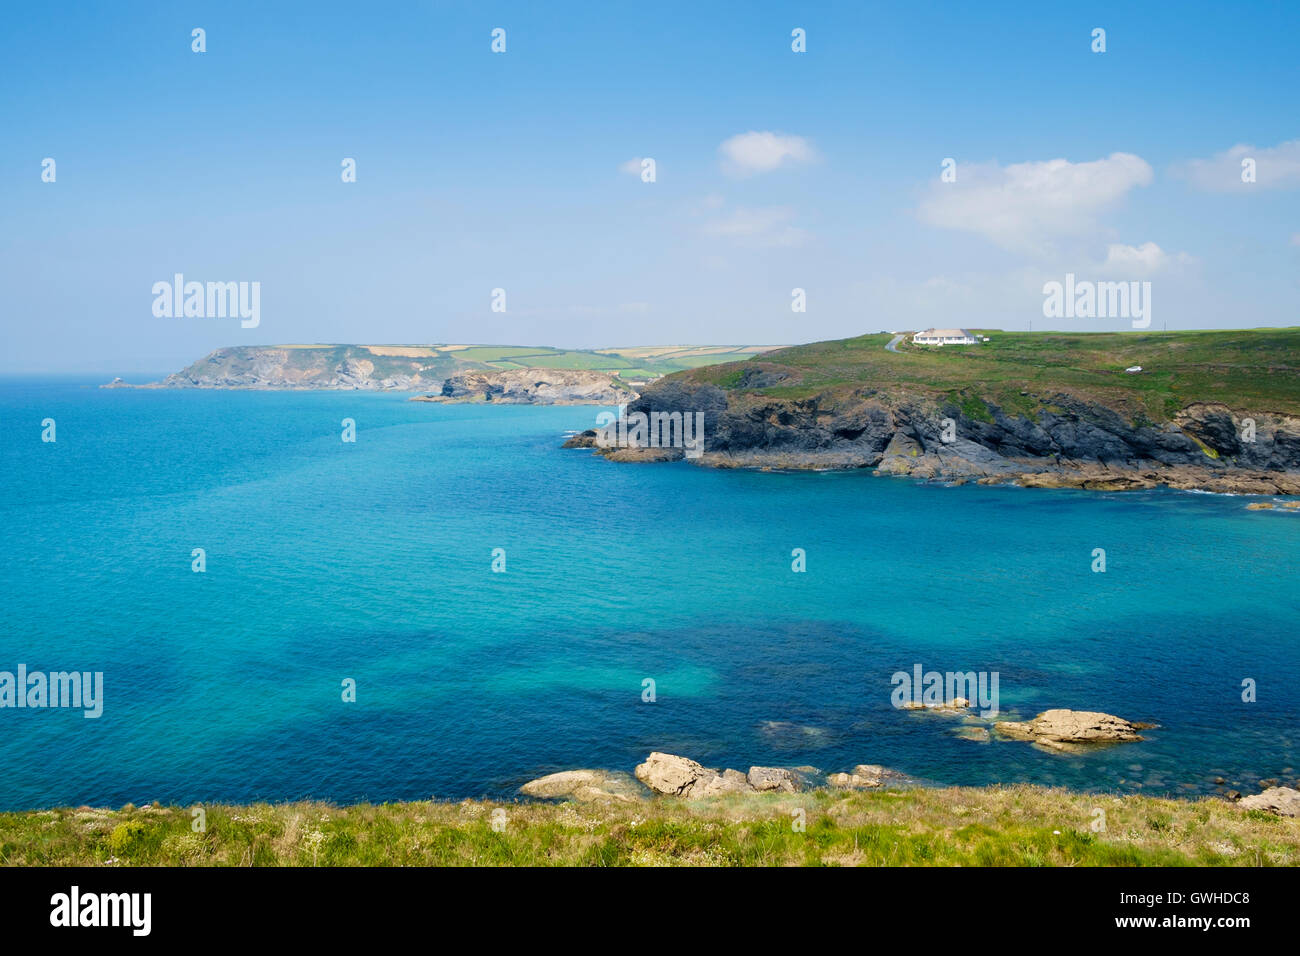 La mer bleu clair de la côte de Poldhu Cove, péninsule du Lézard, Cornwall, England, UK en été Photo Stock